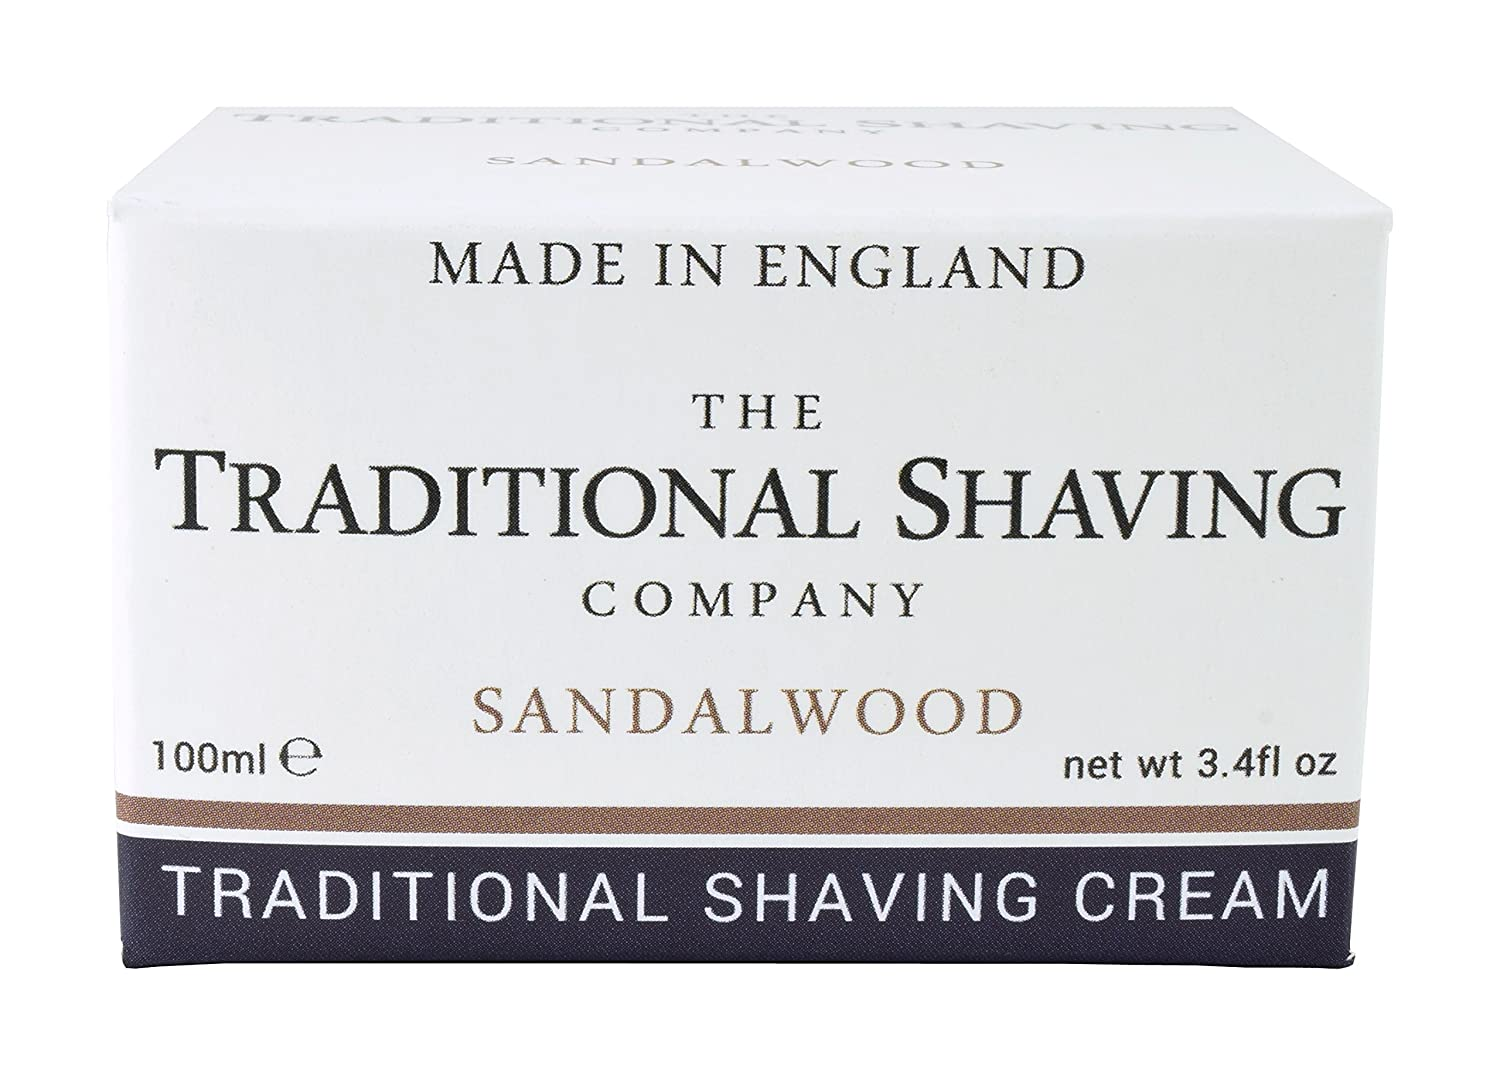 The Traditional Shaving Company Sandalwood Shaving Cream 100ml